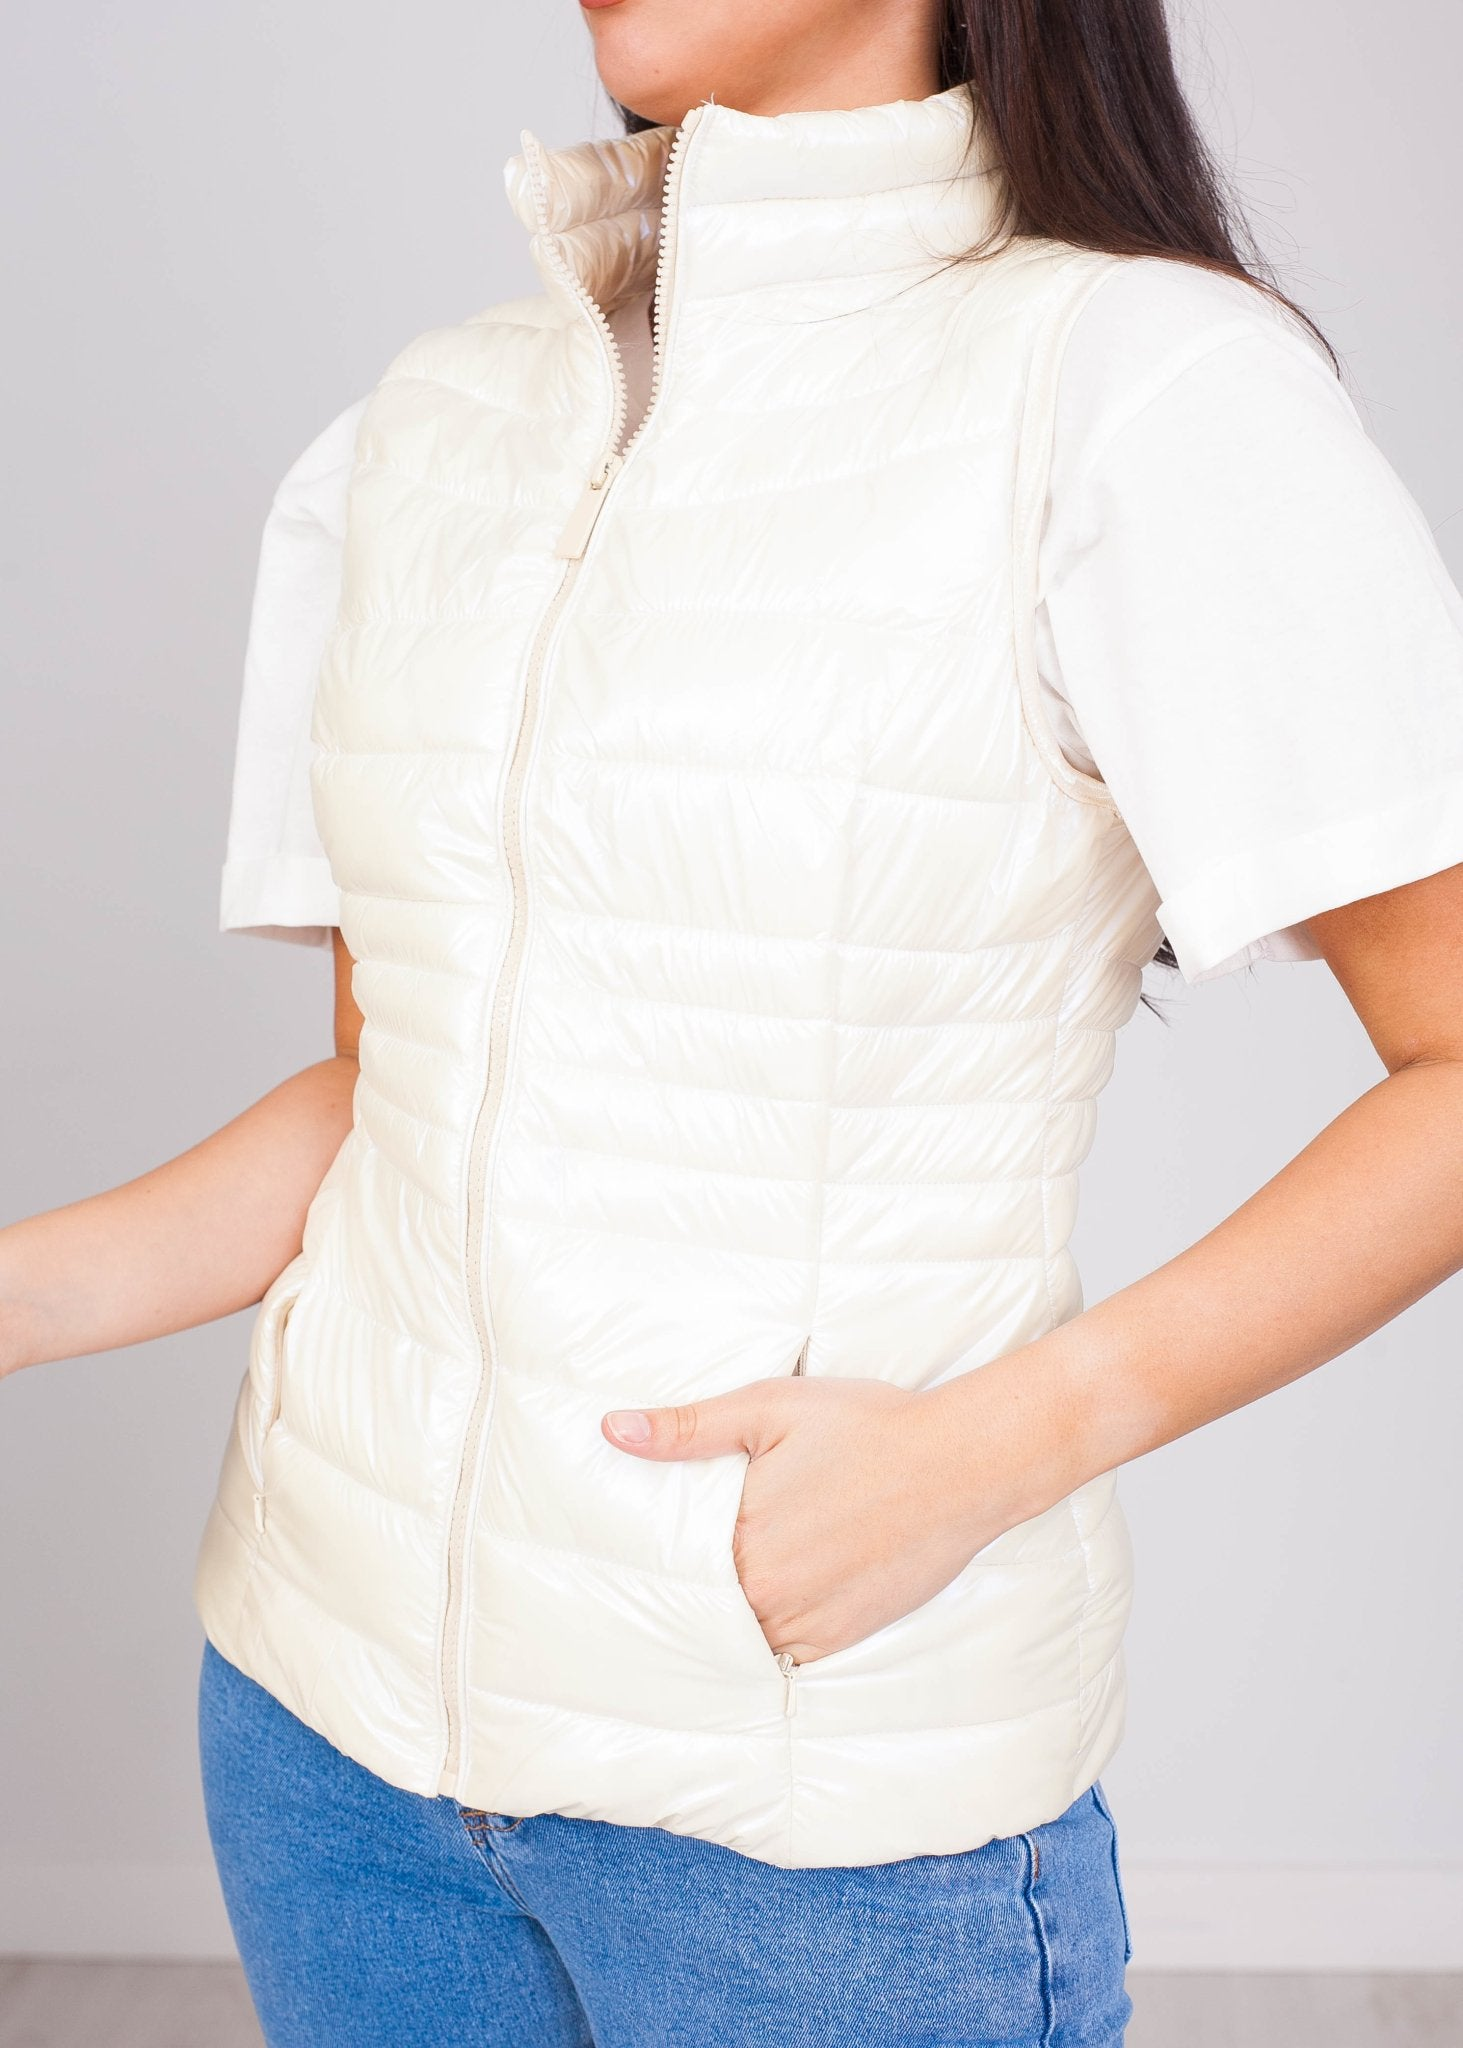 Priya Cream Shimmer Gilet - The Walk in Wardrobe